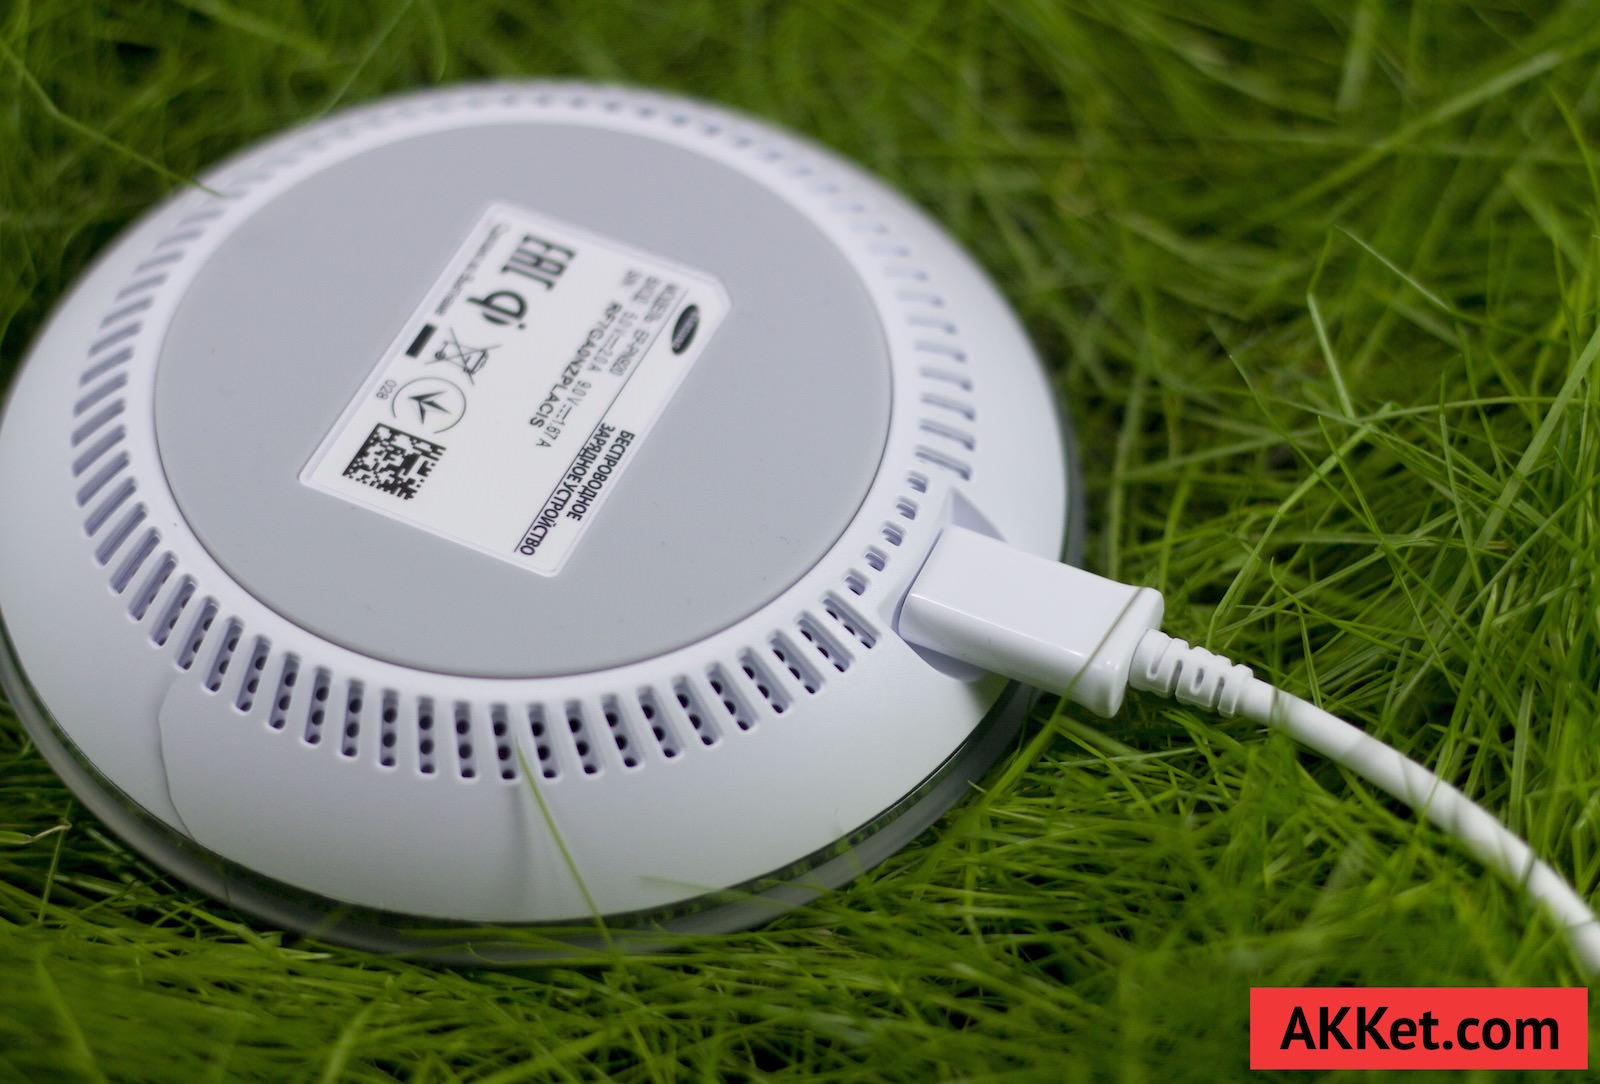 Fast Charge Wireless Charging Pad EP-PN920 9